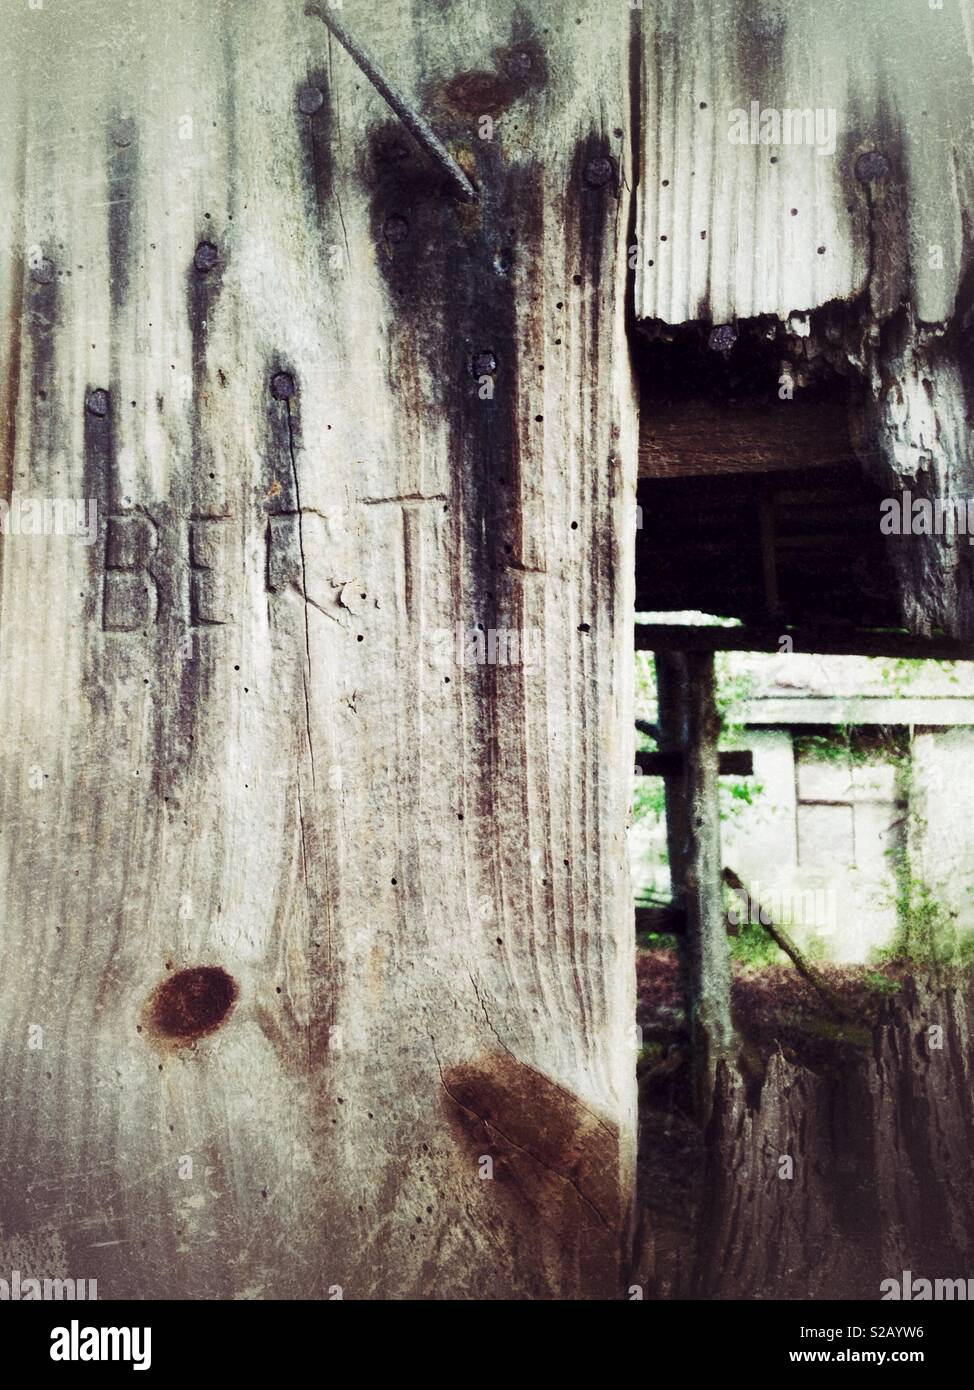 The name BERT is carved into an old, decrepit barn door - Stock Image